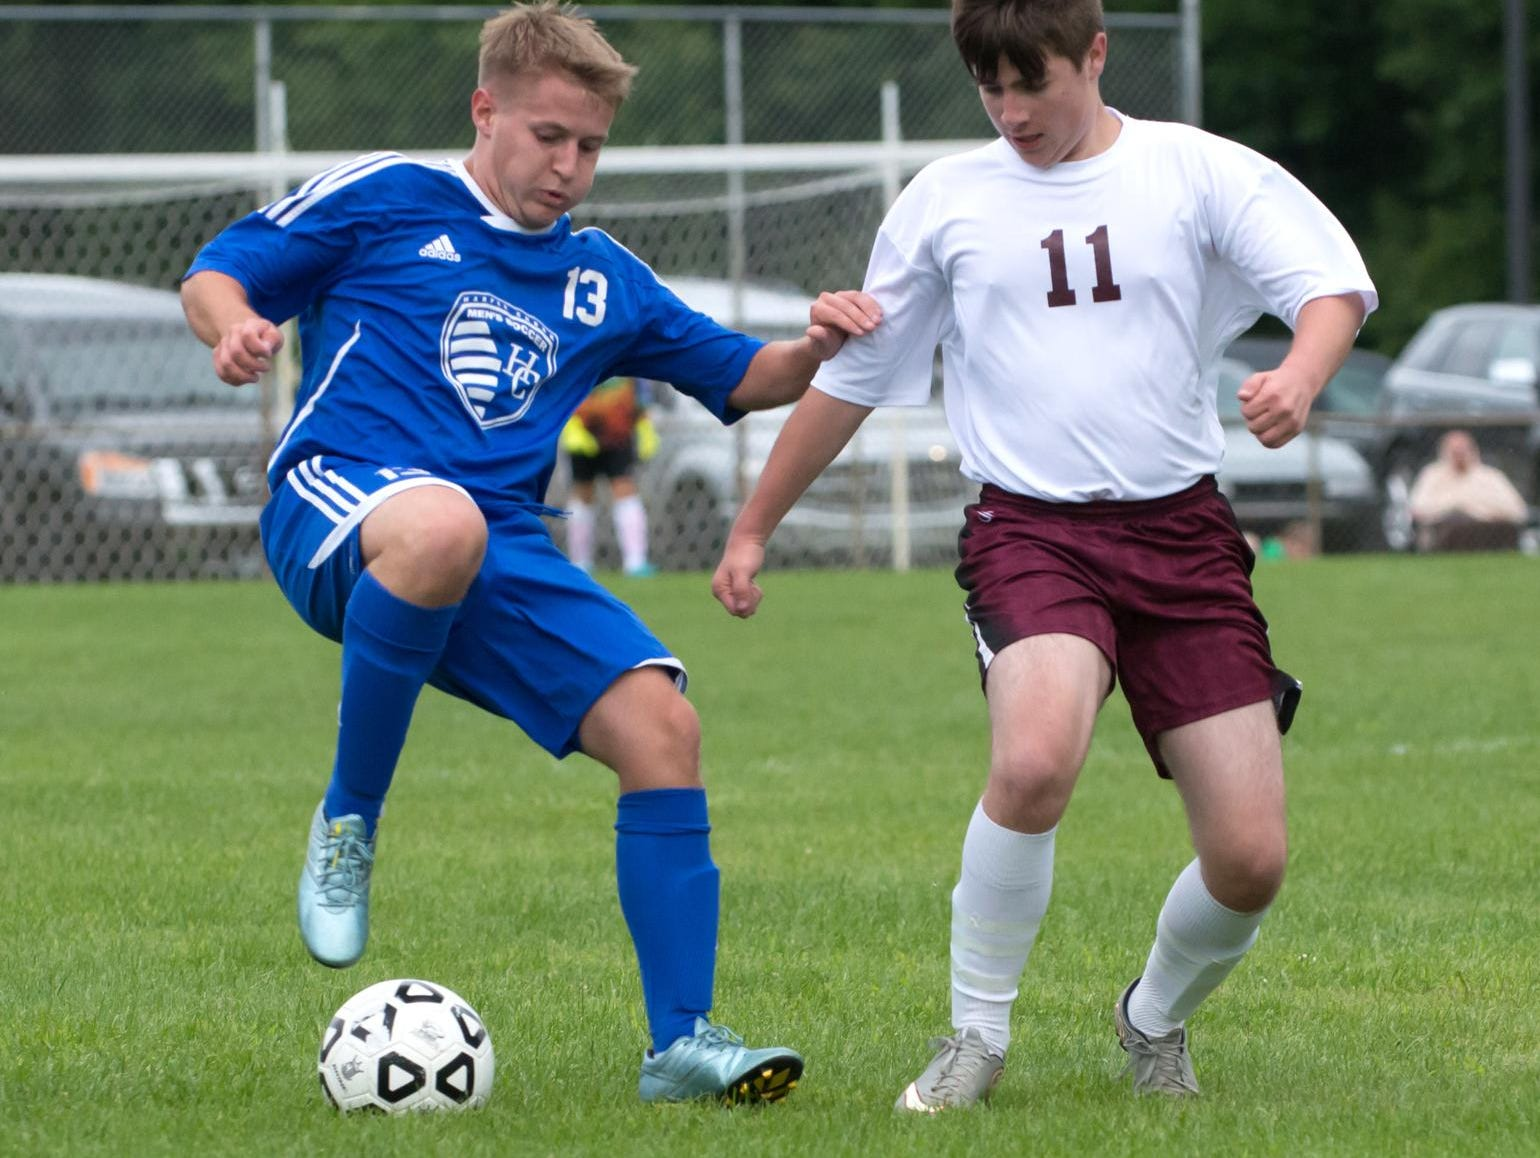 Harper Creek's Josh Fleisher (13) works to keep the ball in play and away from Delton Kellog's Patrick Grubius.